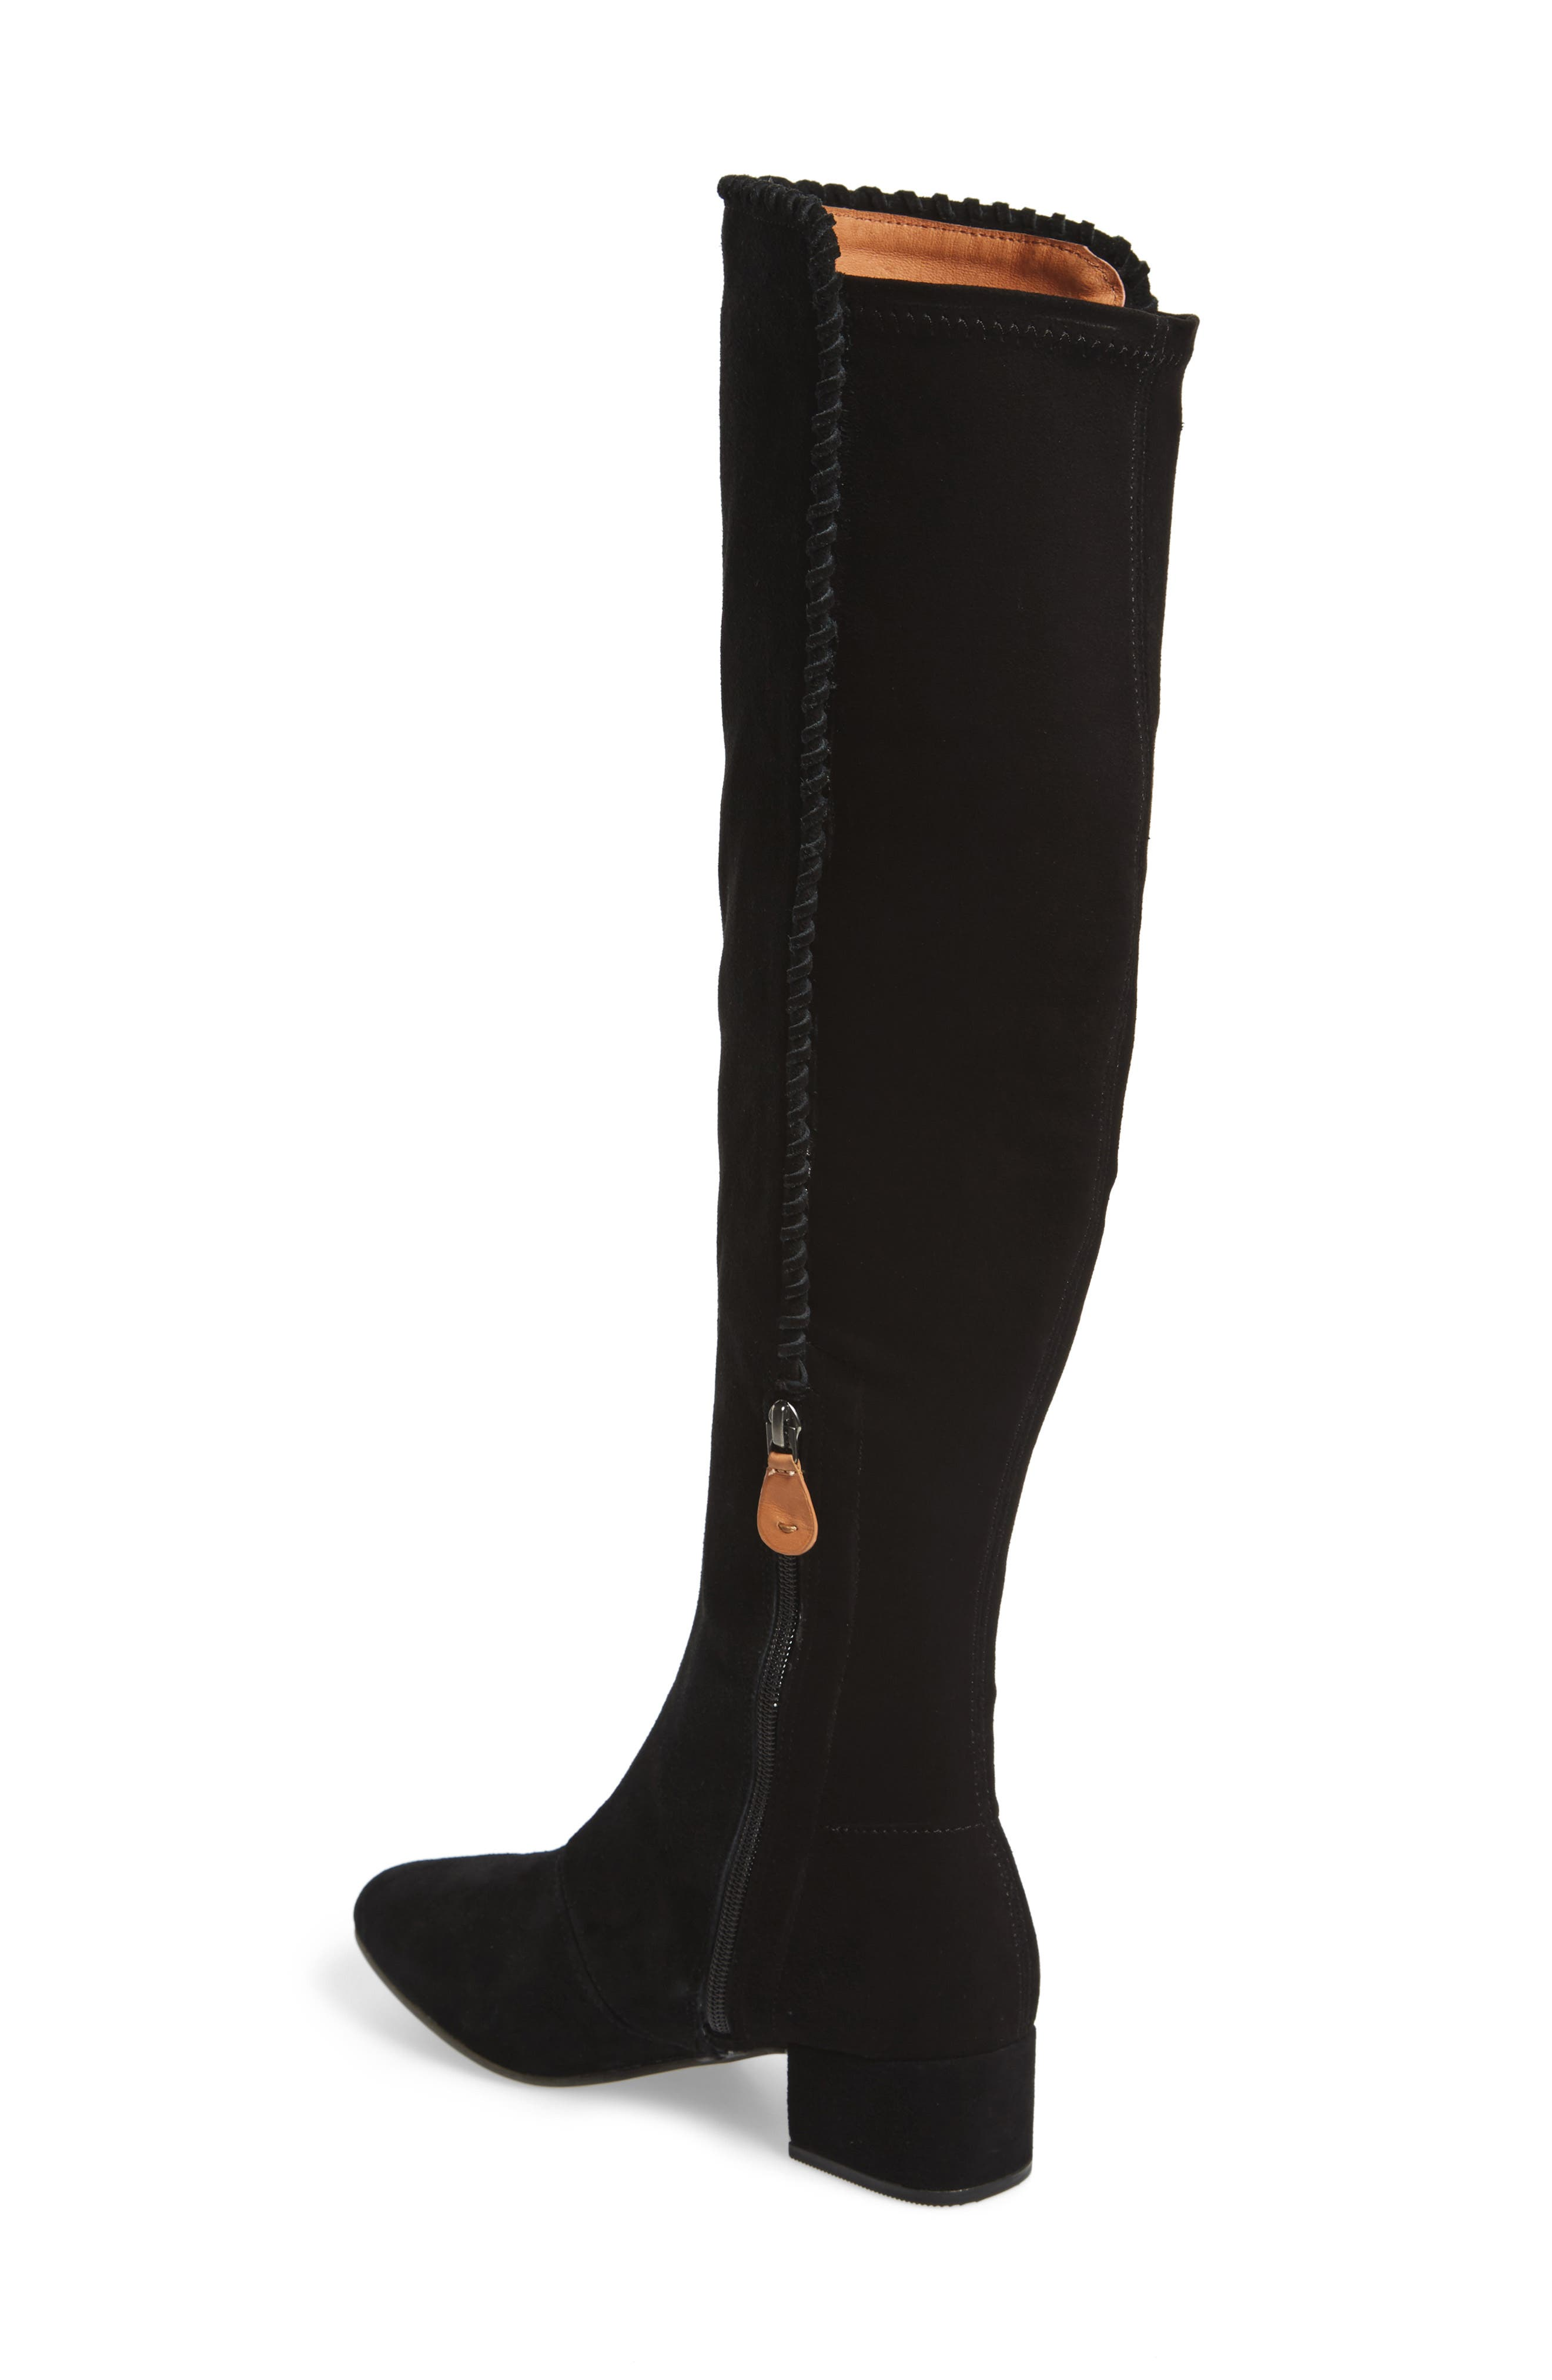 Gentle Souls Emery Over the Knee Boot,                             Alternate thumbnail 2, color,                             001